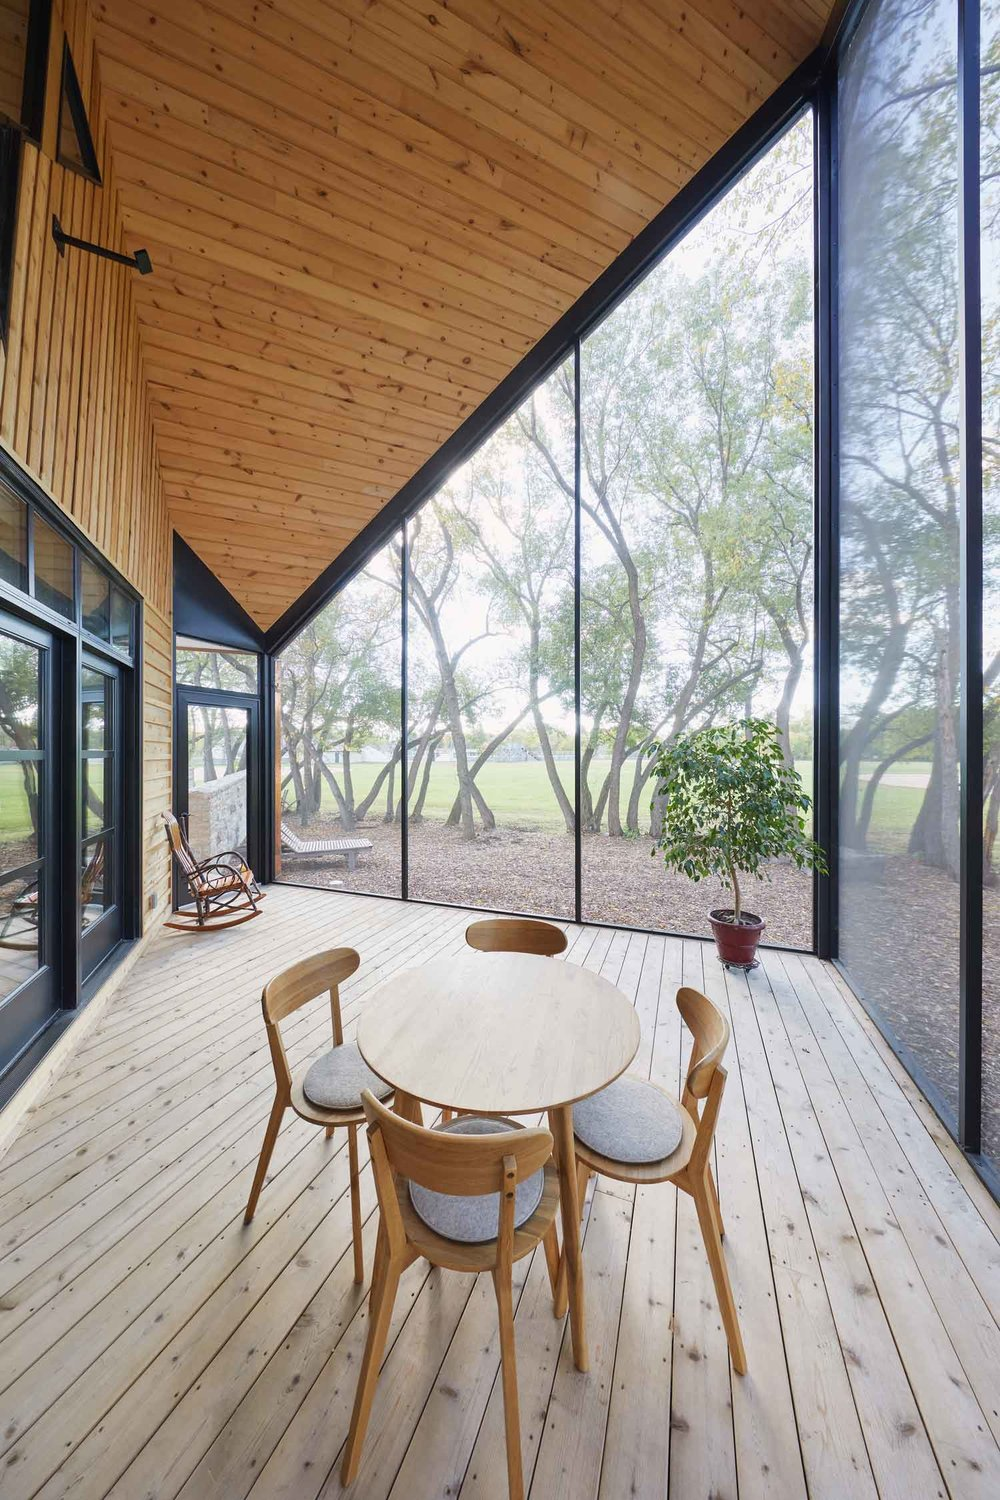 An airy porch overlooking a forested area encloses the end of one of the wings created by the cross-shaped design.